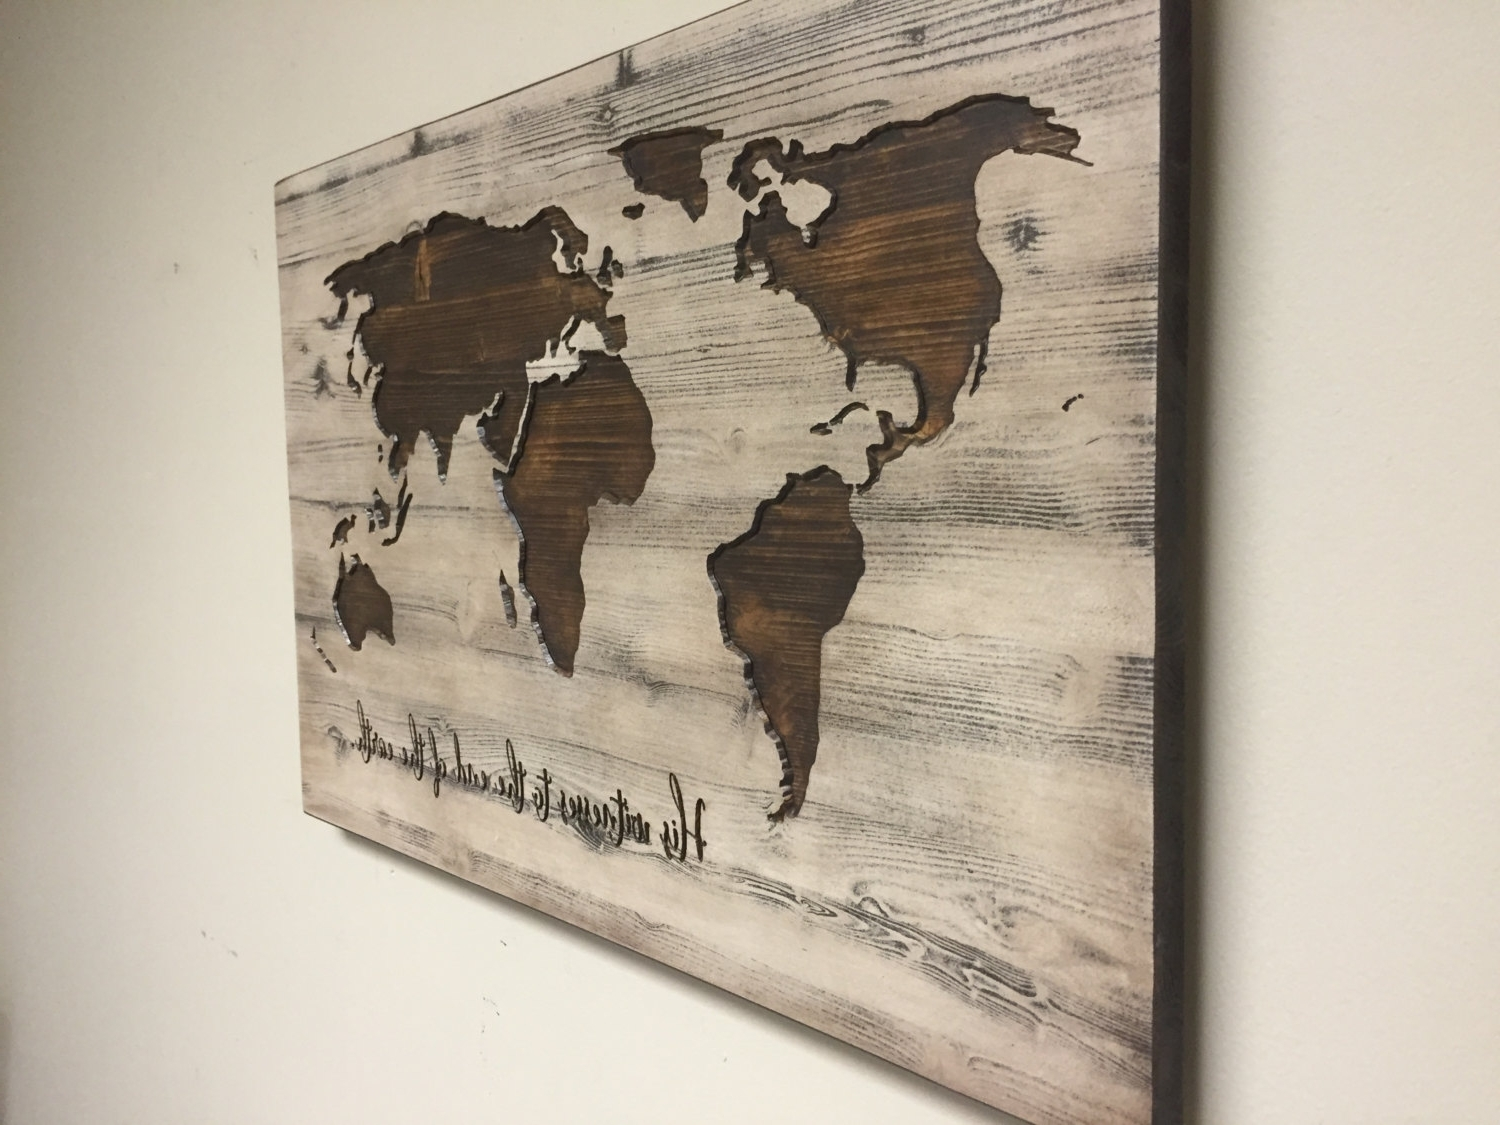 Old World Map Wall Art For Preferred World Map Wall Art Spiritual Vintage Carved Wood His With (Gallery 4 of 15)